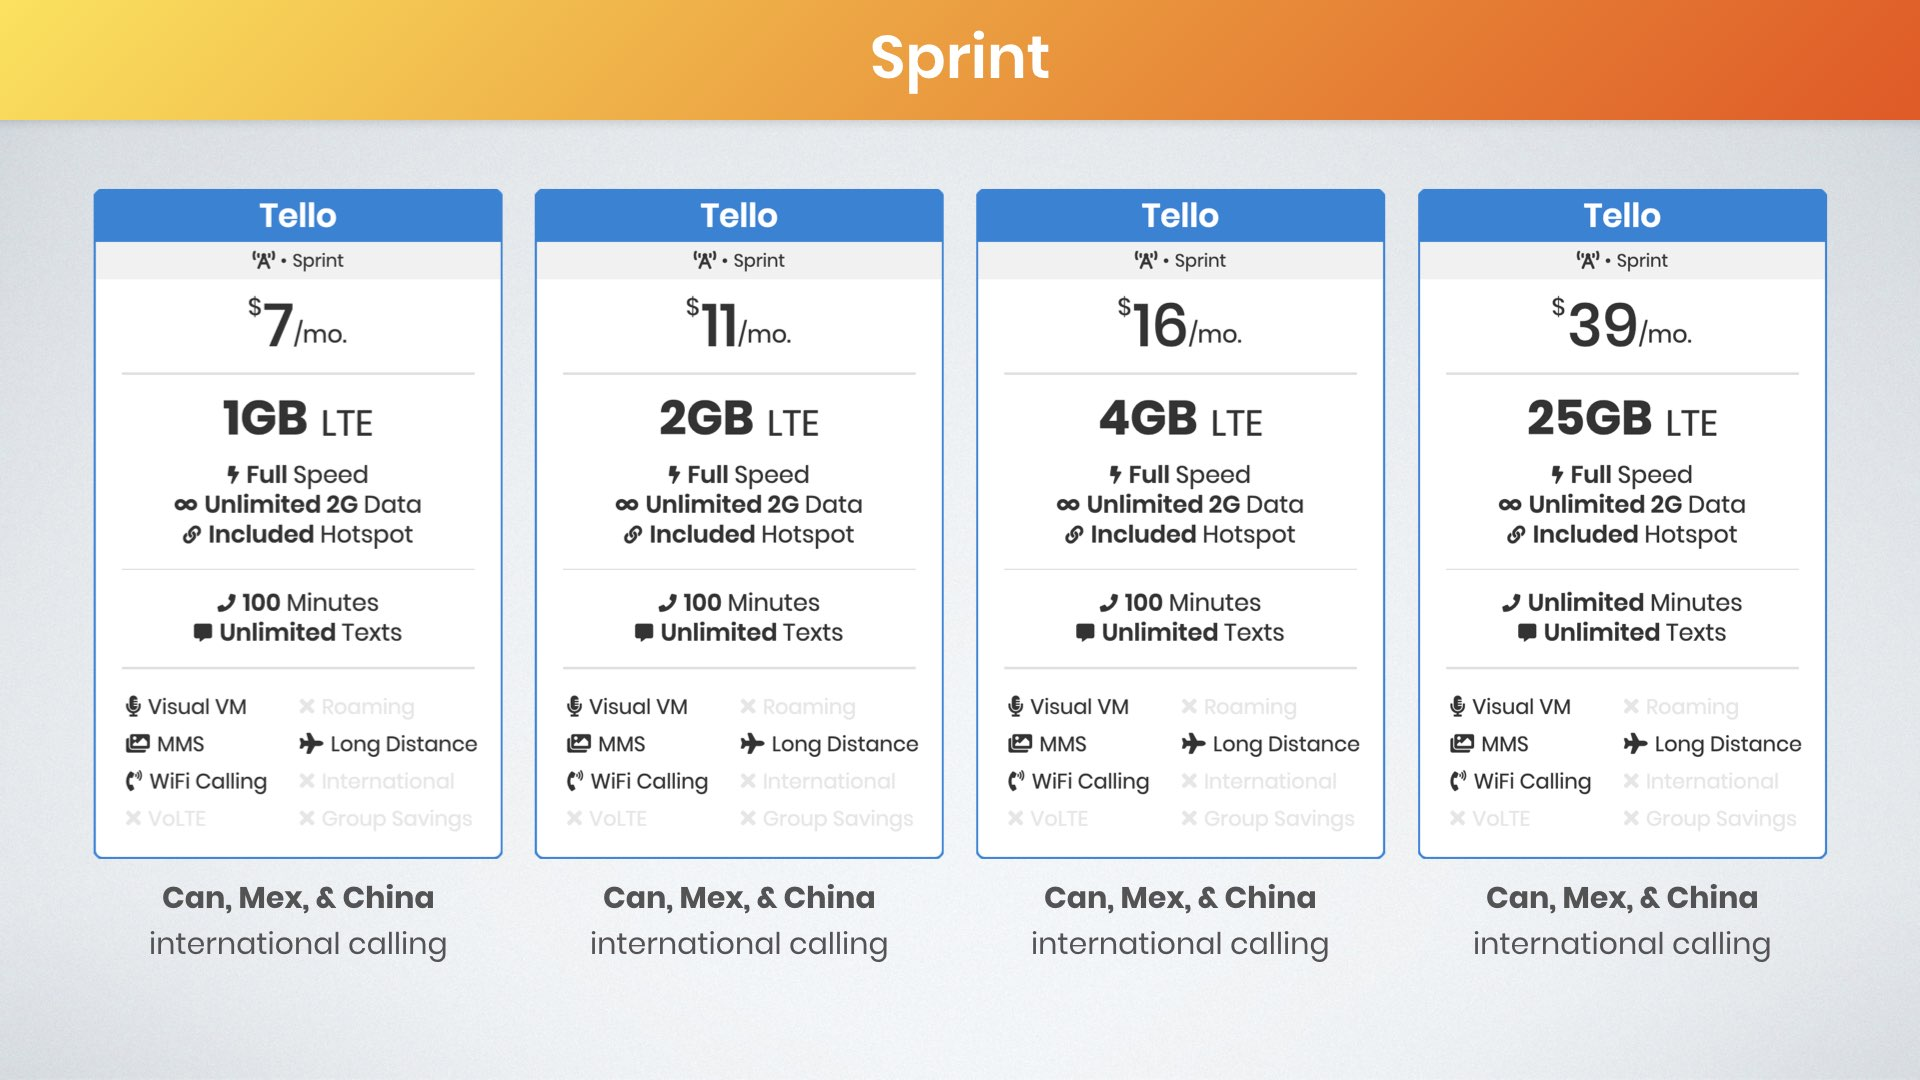 graphic of Tello's affordable prepaid plans on the Sprint network